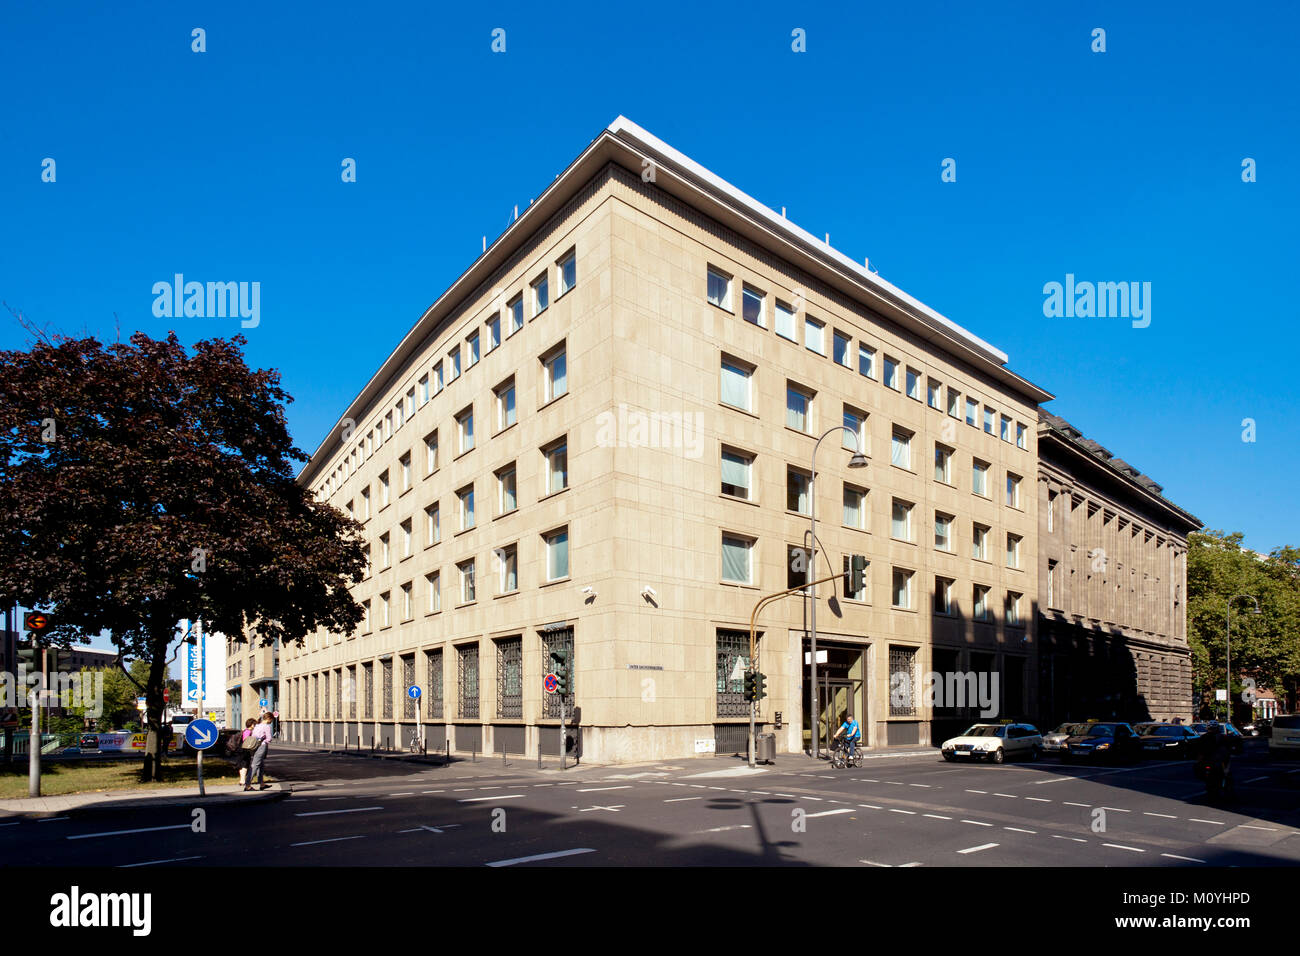 Germany, Cologne, the asset management bank Sal. Oppenheim in the financial district.   Deutschland, Koeln, das - Stock Image